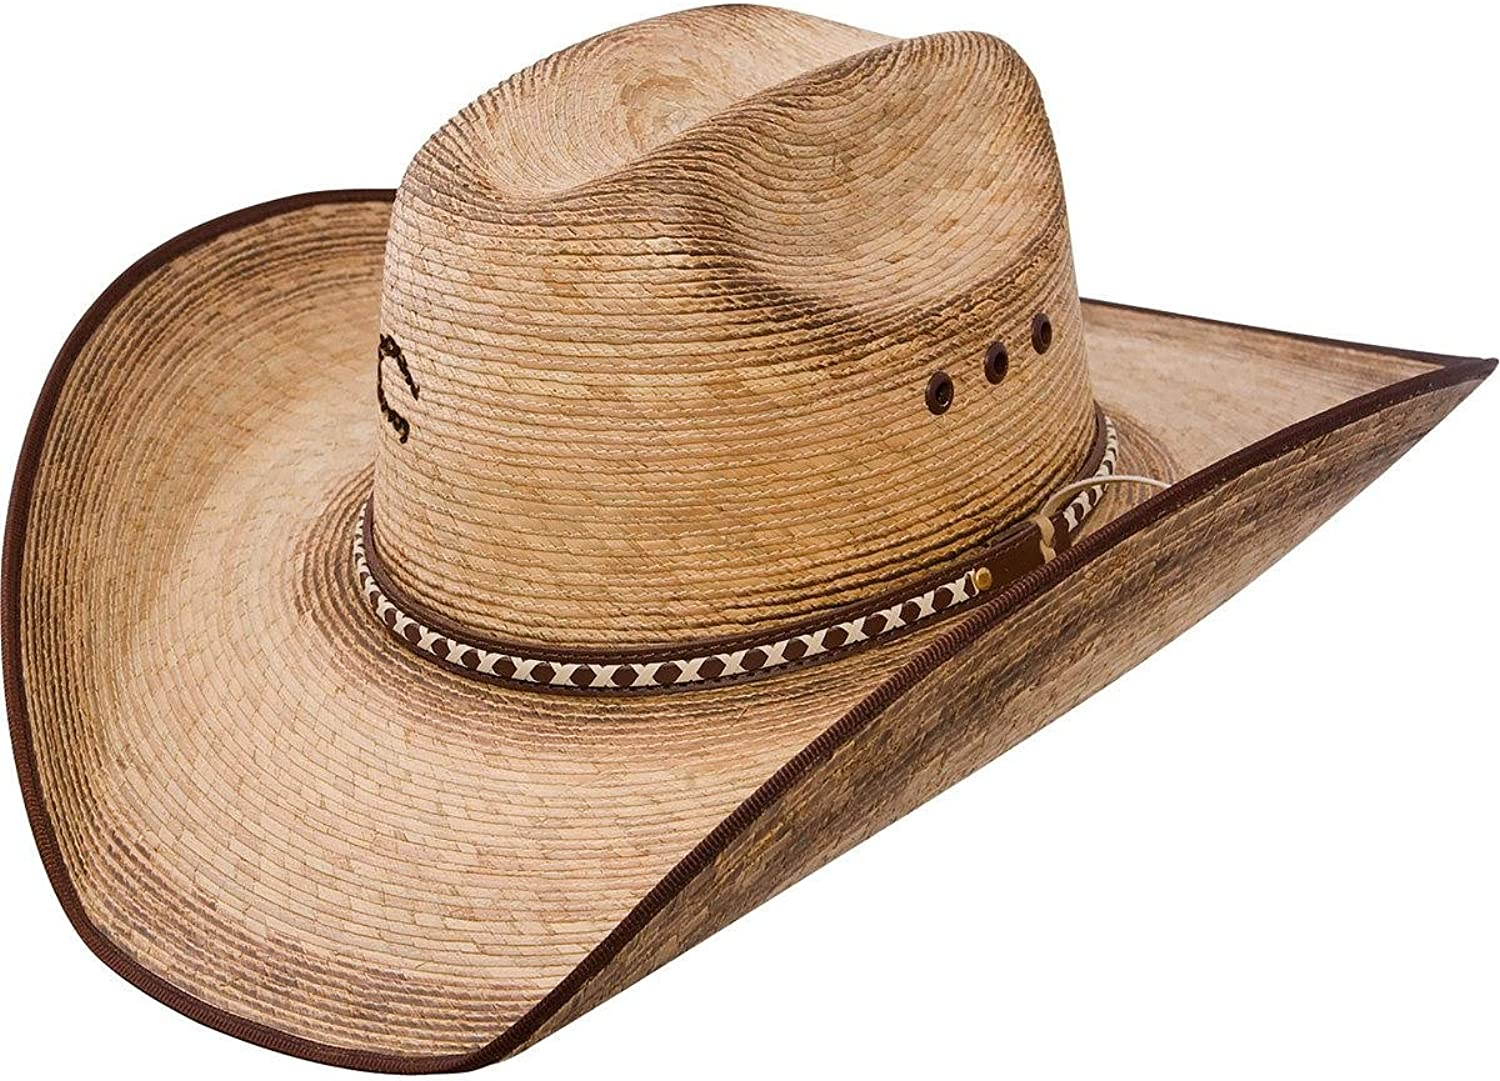 Charlie 1 Horse Hats Womens Comanche Straw Cowgirl Hat B New Los Angeles Mall popularity